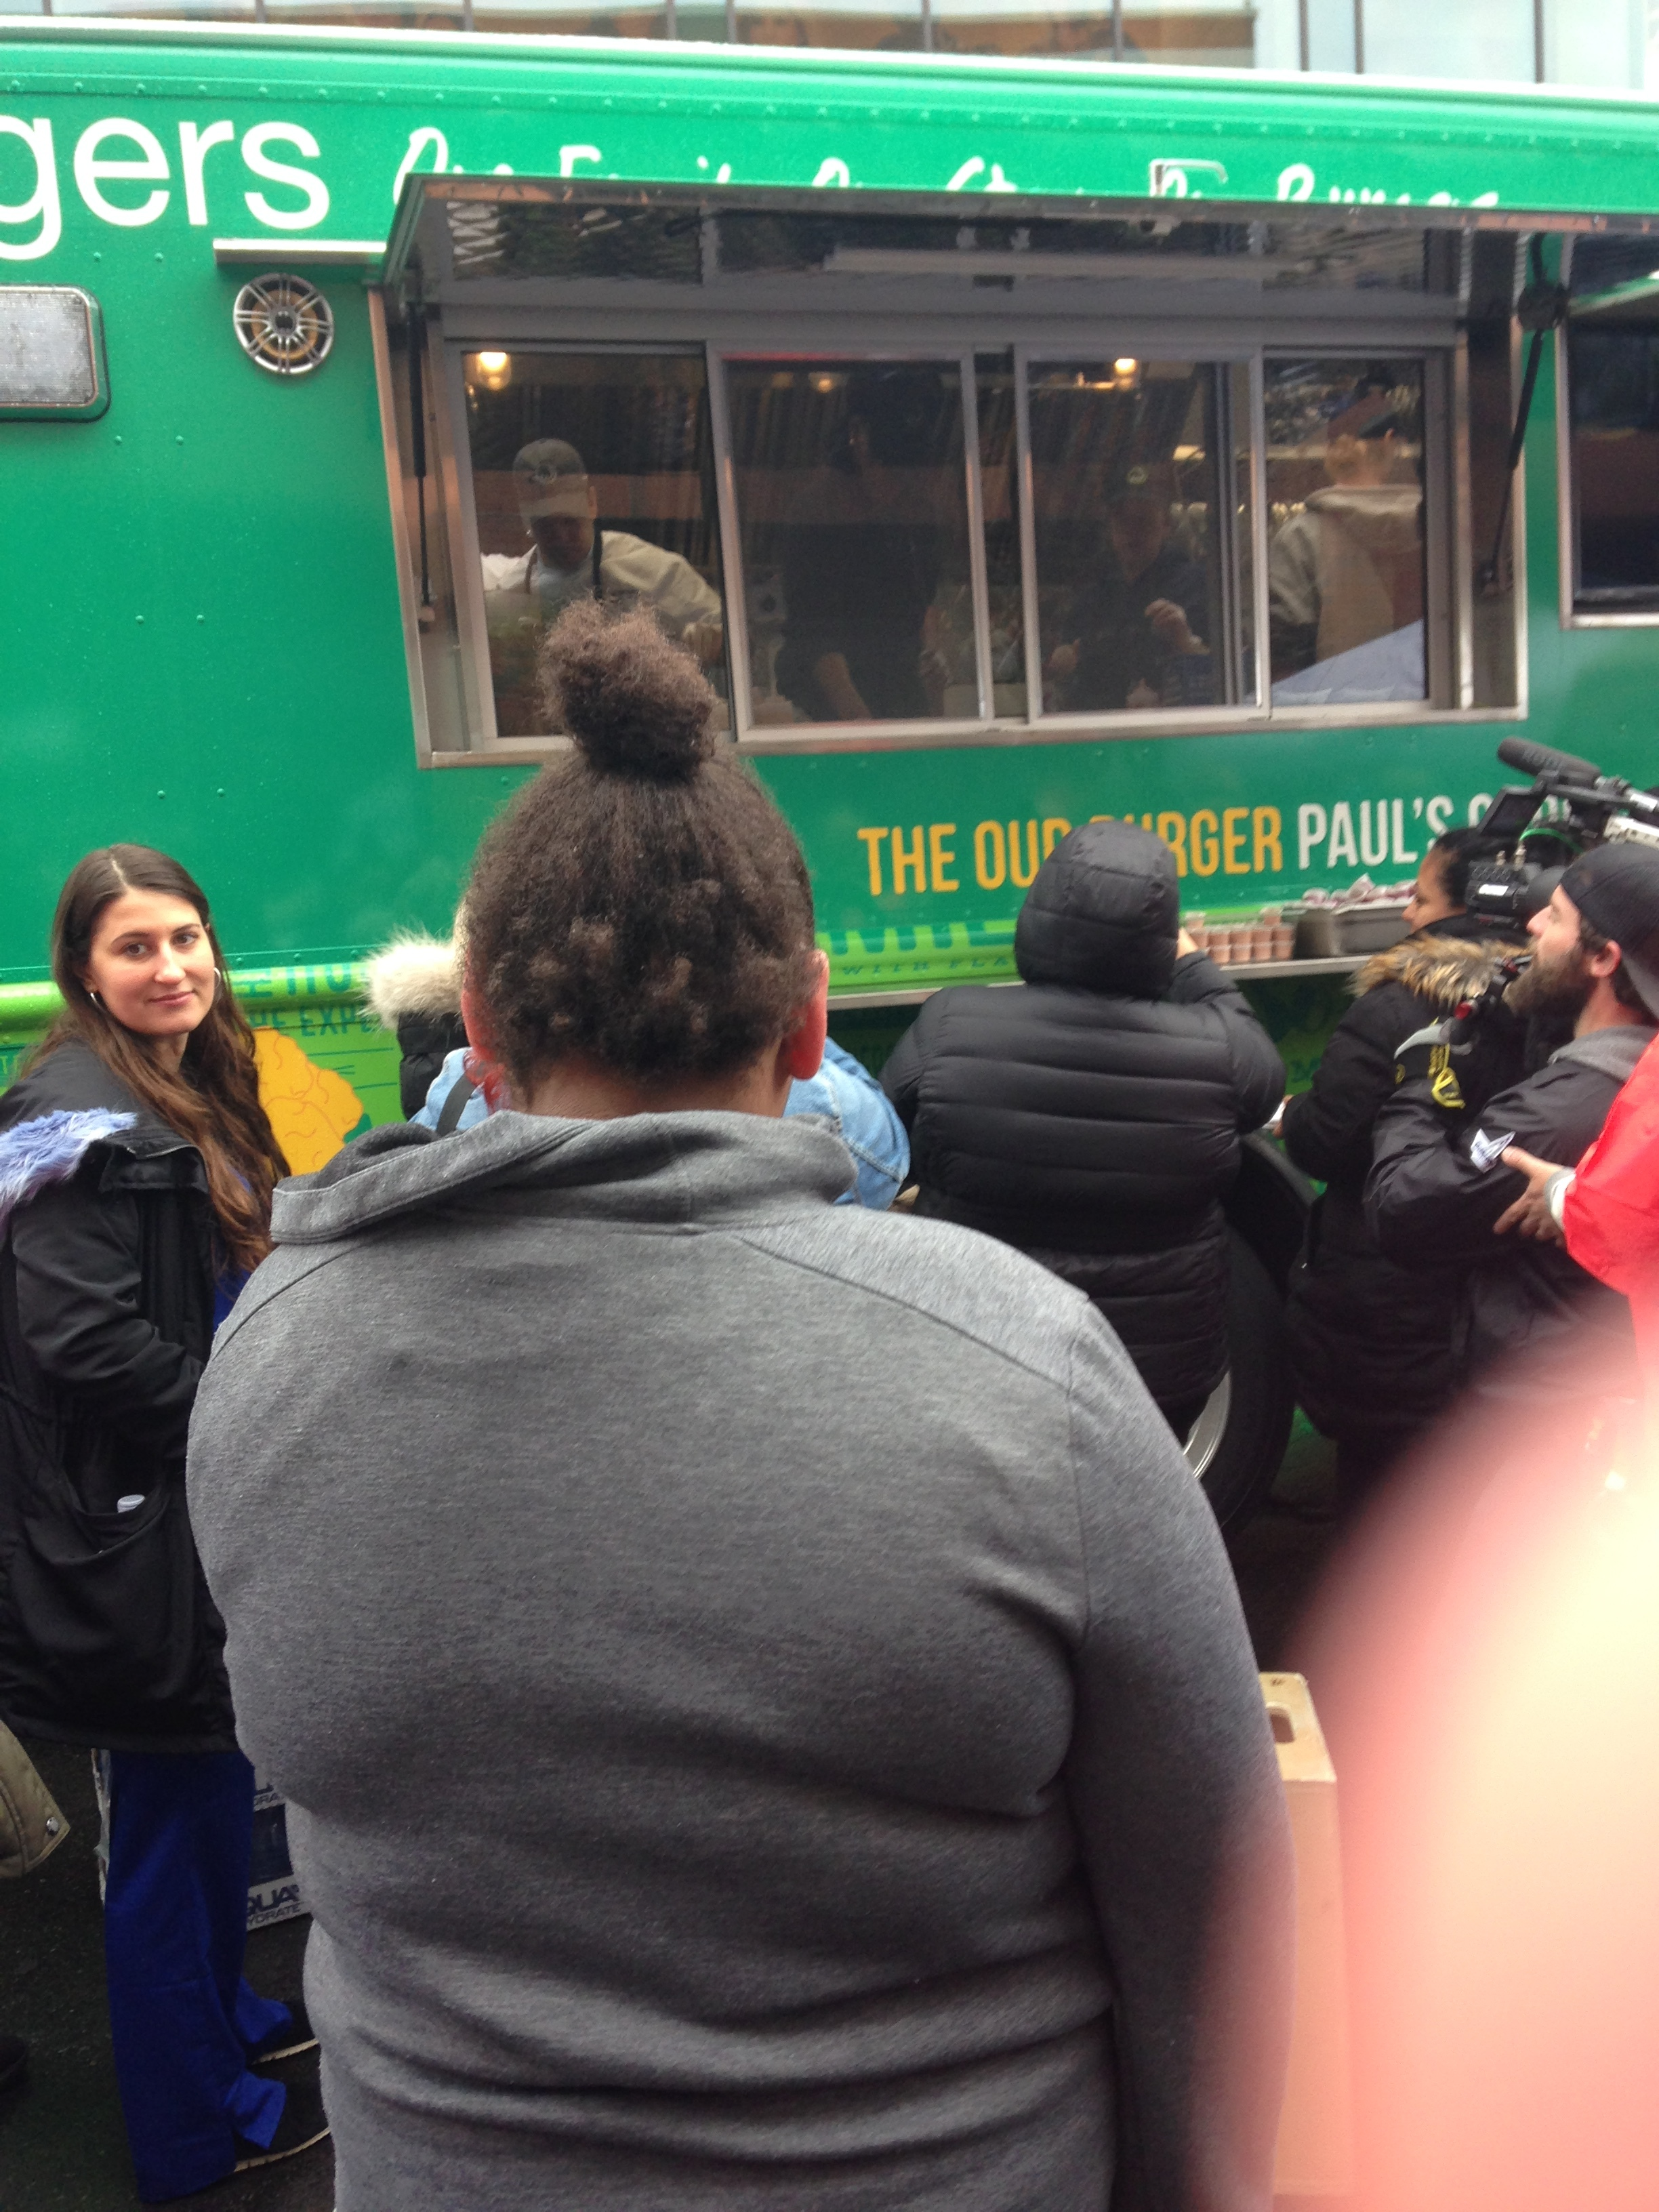 Trying to catch a glimpse of Paul in the food truck